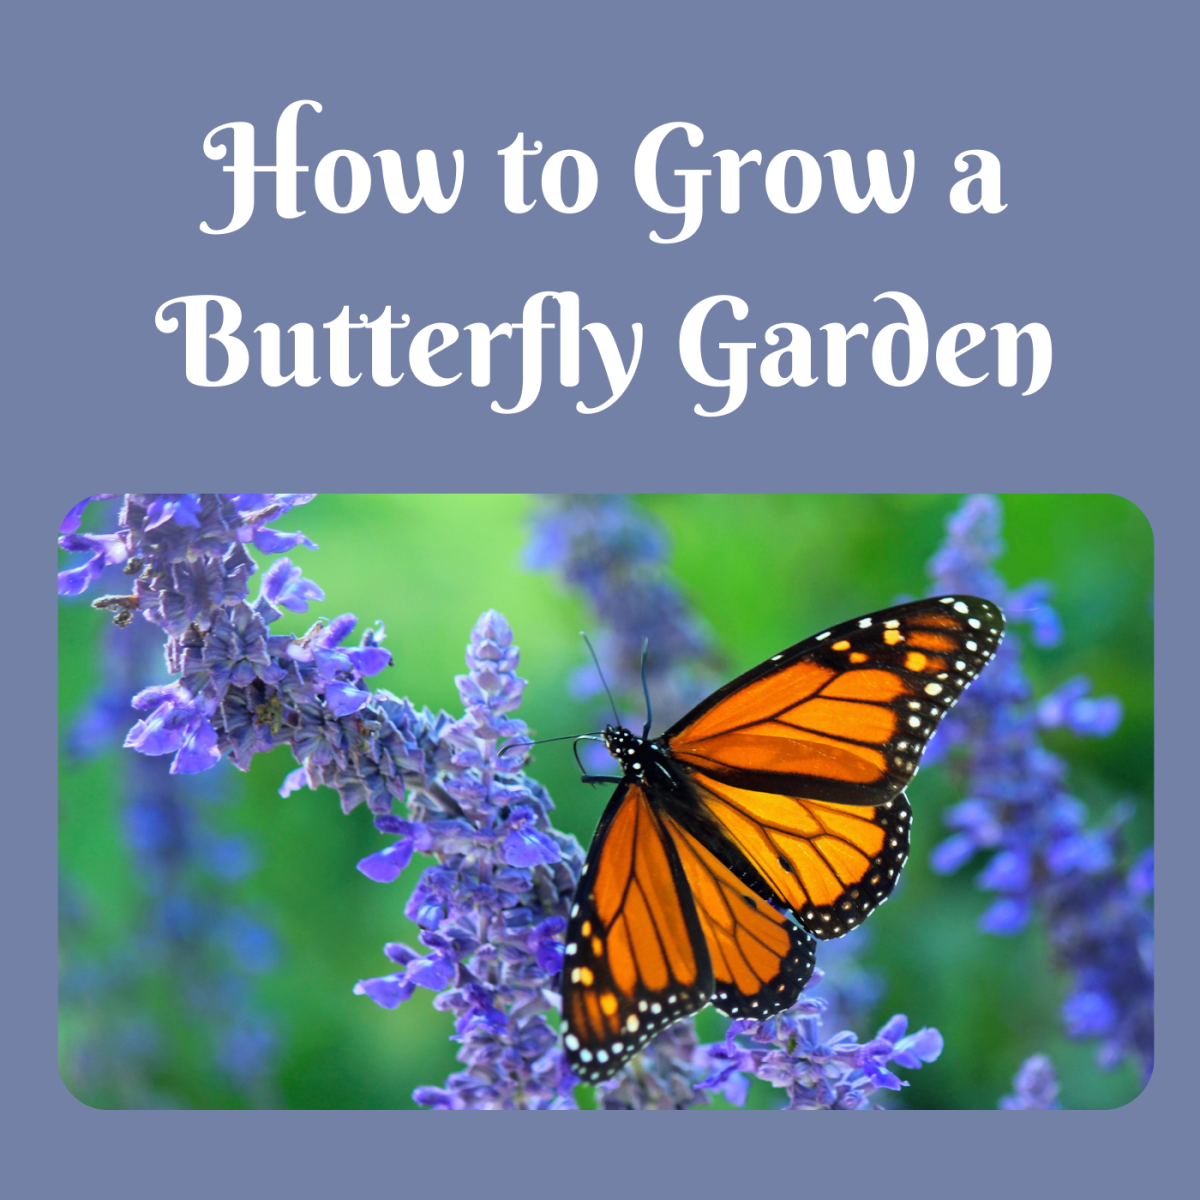 Attract butterflies and other pollinators to your garden with plants and fruit.